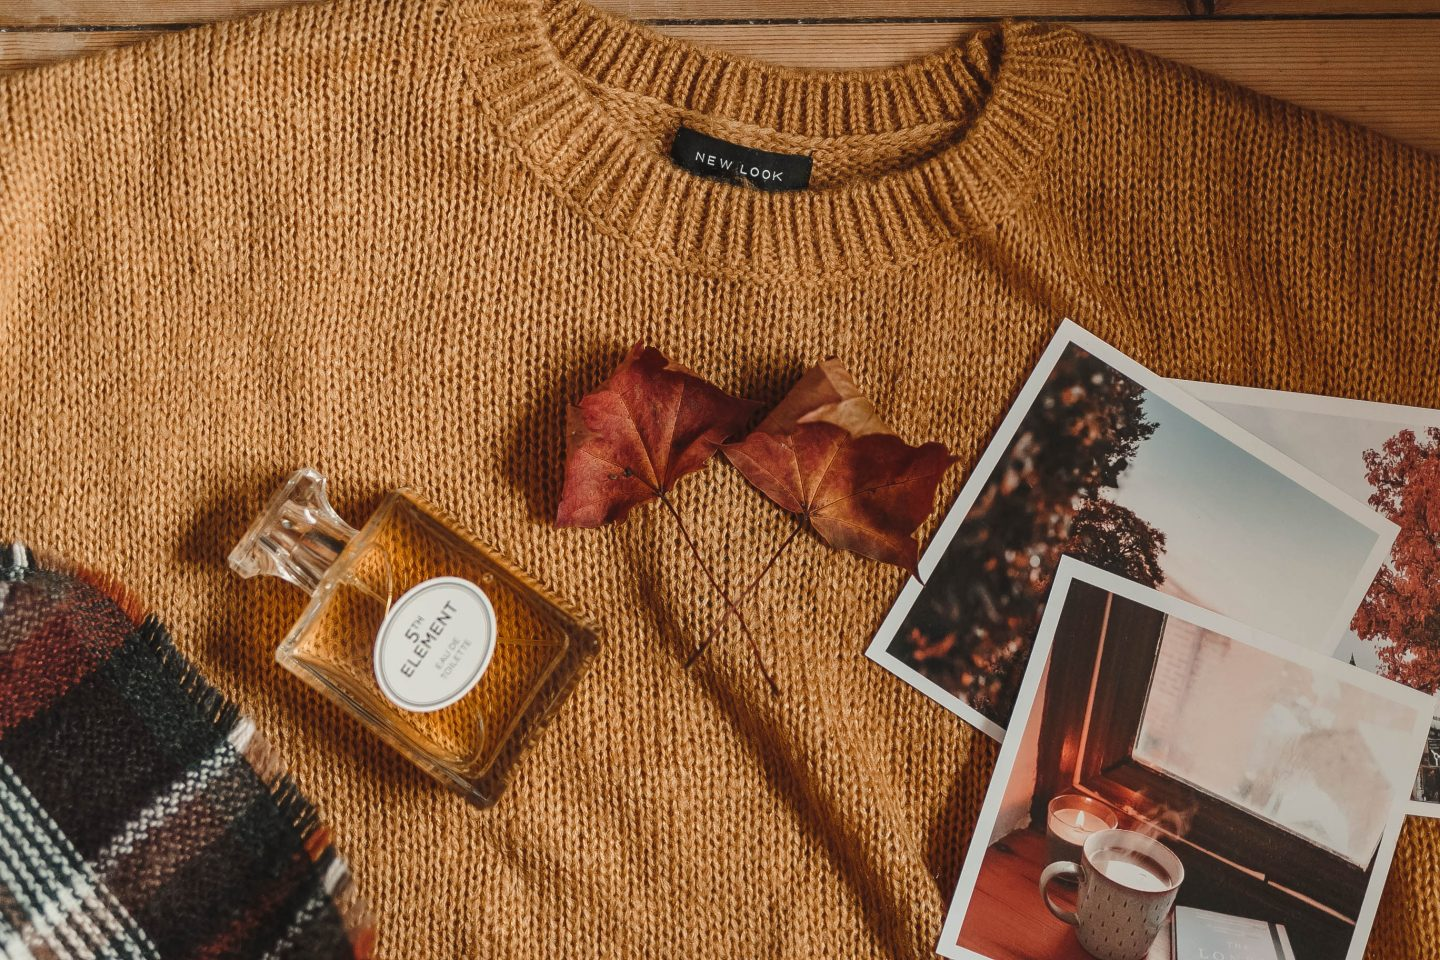 Autumn, Fall, Leaves, Jumper, Autumnal Shot, flatlay, Autumnal Flatlay, Flat lay, Product Photography, Blogger Photos, Mustard colour jumper, Perfume, Chanel No.5 Dupe, katiebwrites, Katie Writes, Derbyshire Bloggers, Derby Bloggers,